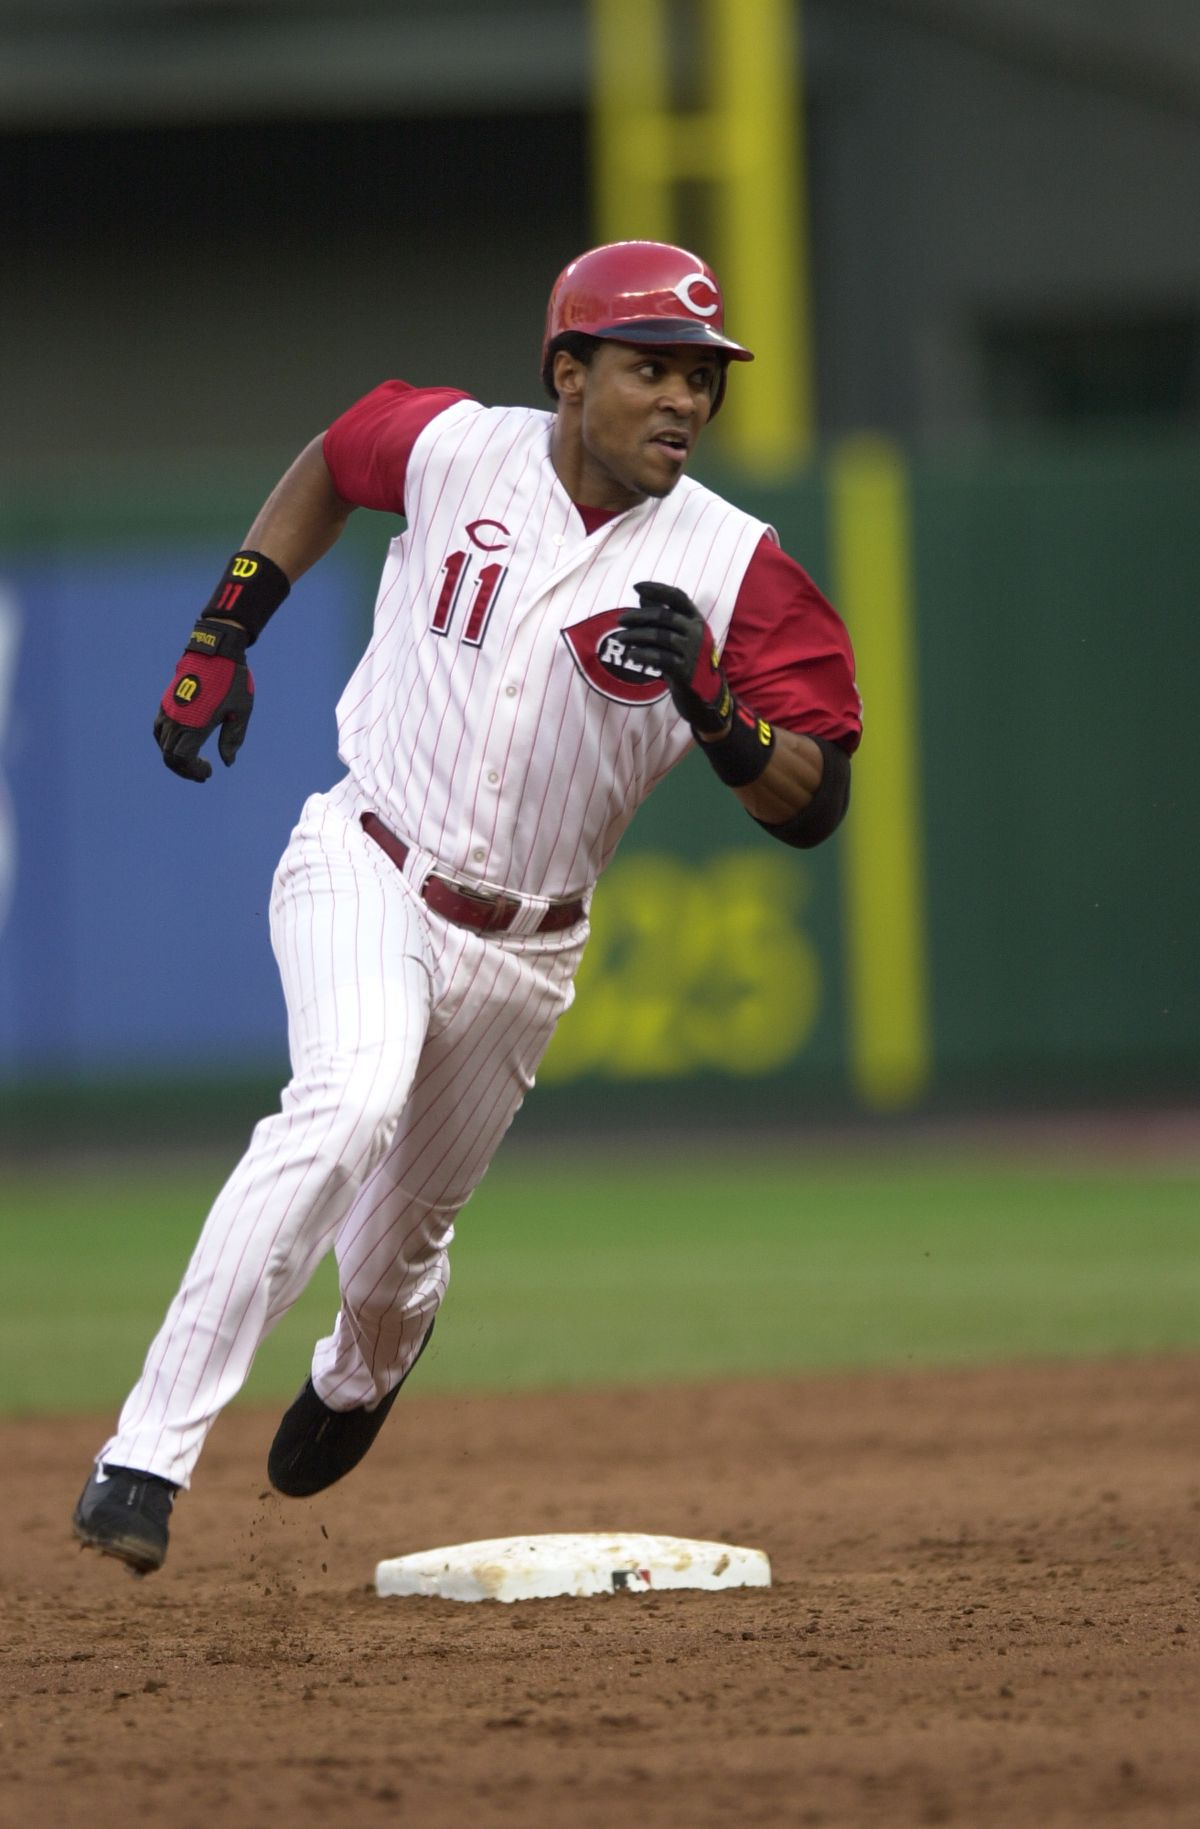 Barry Larkin Cincinnati Reds Barry Larkin Cincinnati Cincinnati Reds Baseball